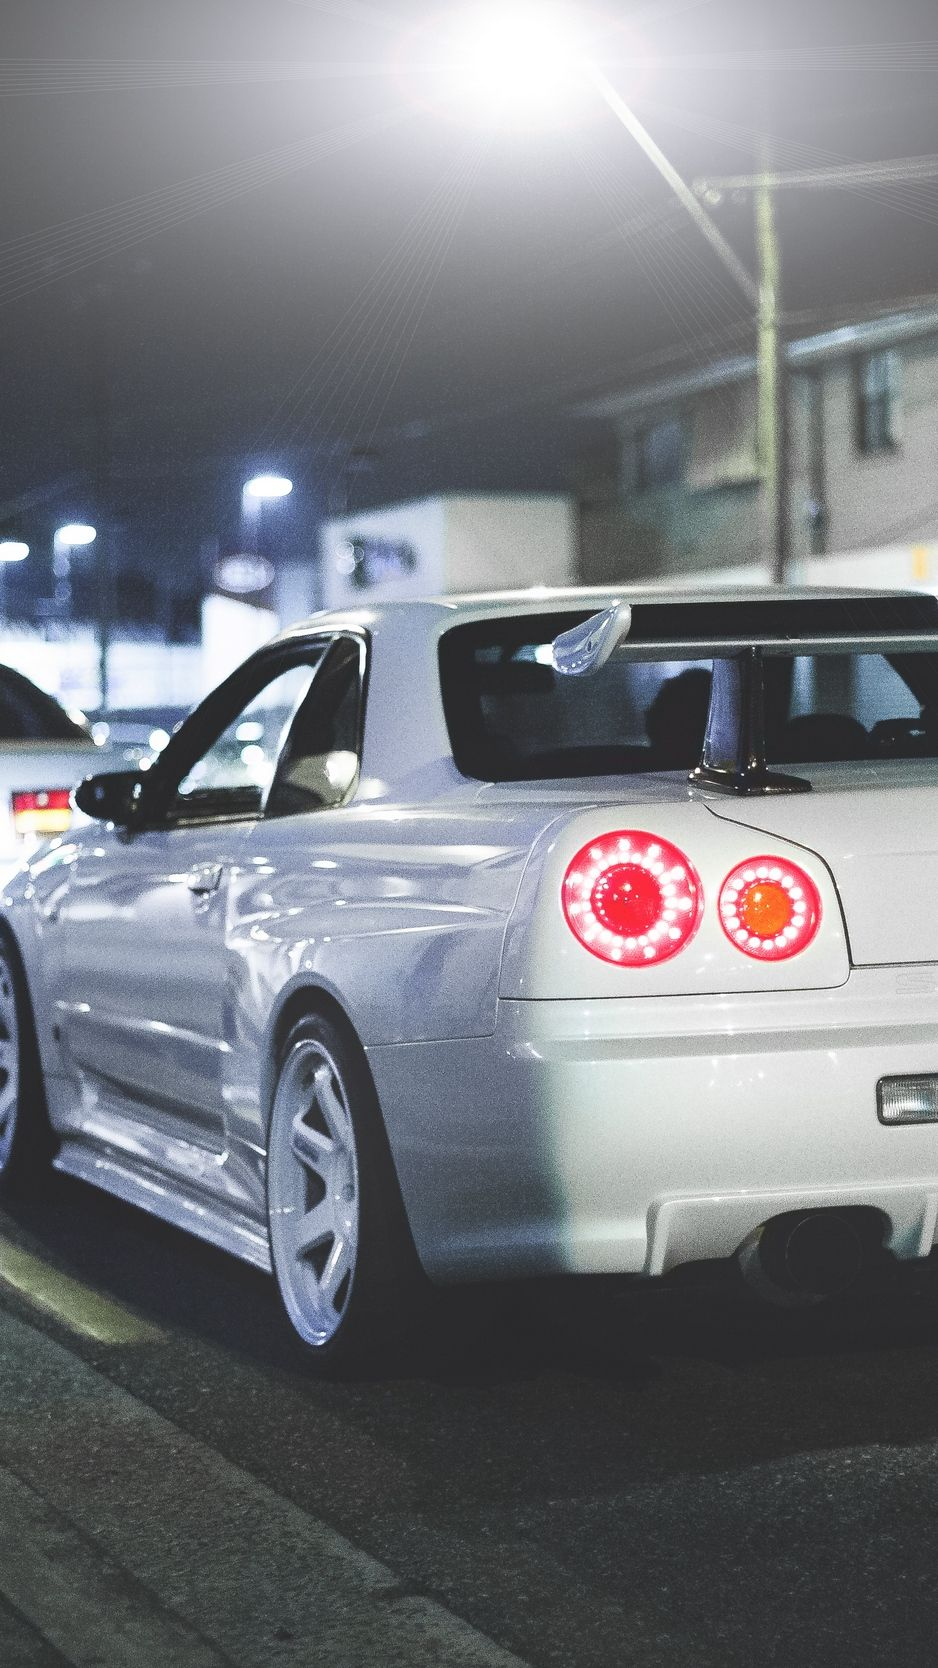 Gtr Iphone Wallpapers Top Free Gtr Iphone Backgrounds